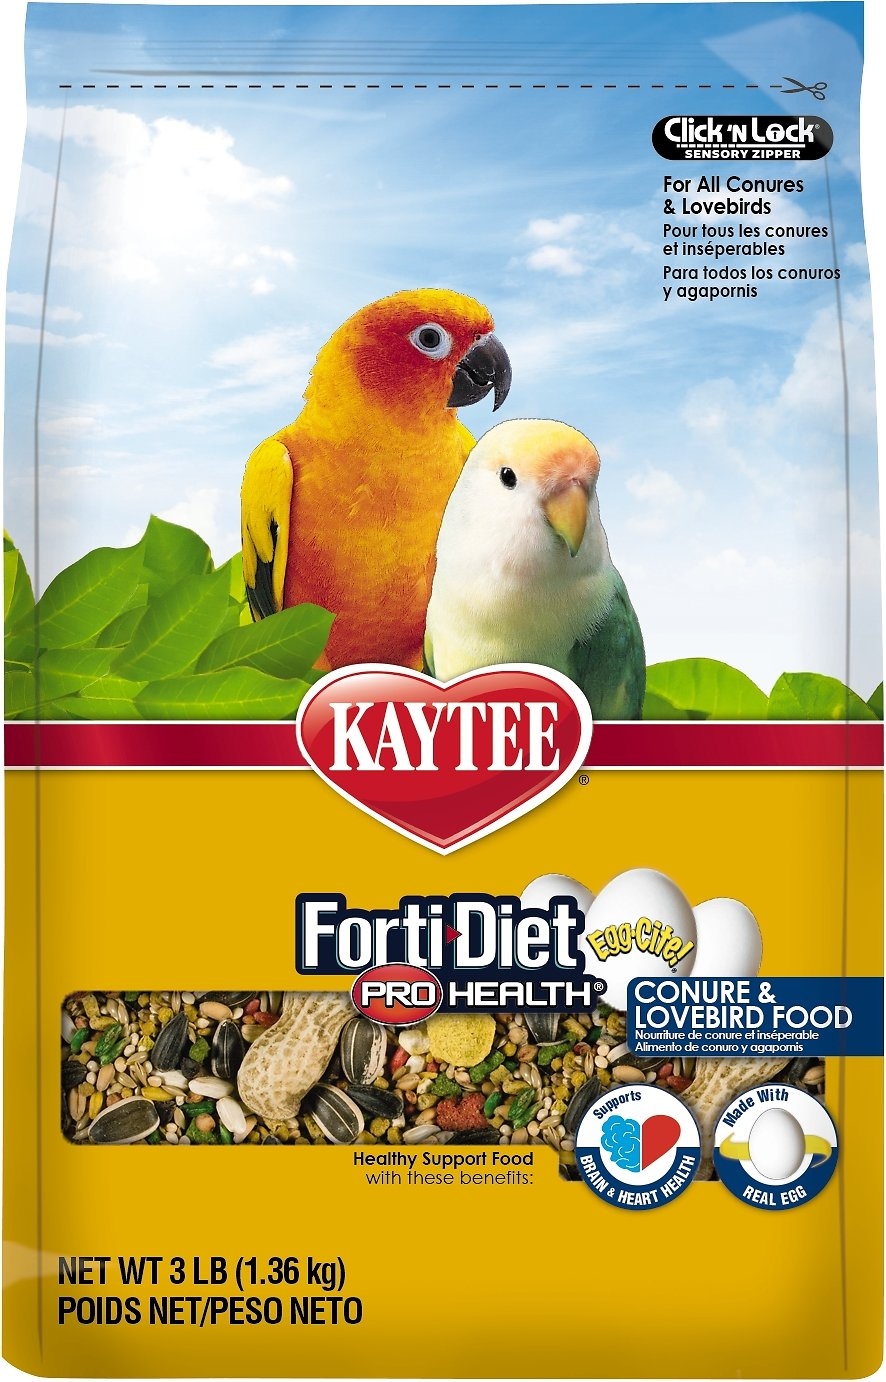 Kaytee Egg-Cite! Forti-Diet Pro Health Conure & Lovebird Bird Food, 3-lb bag